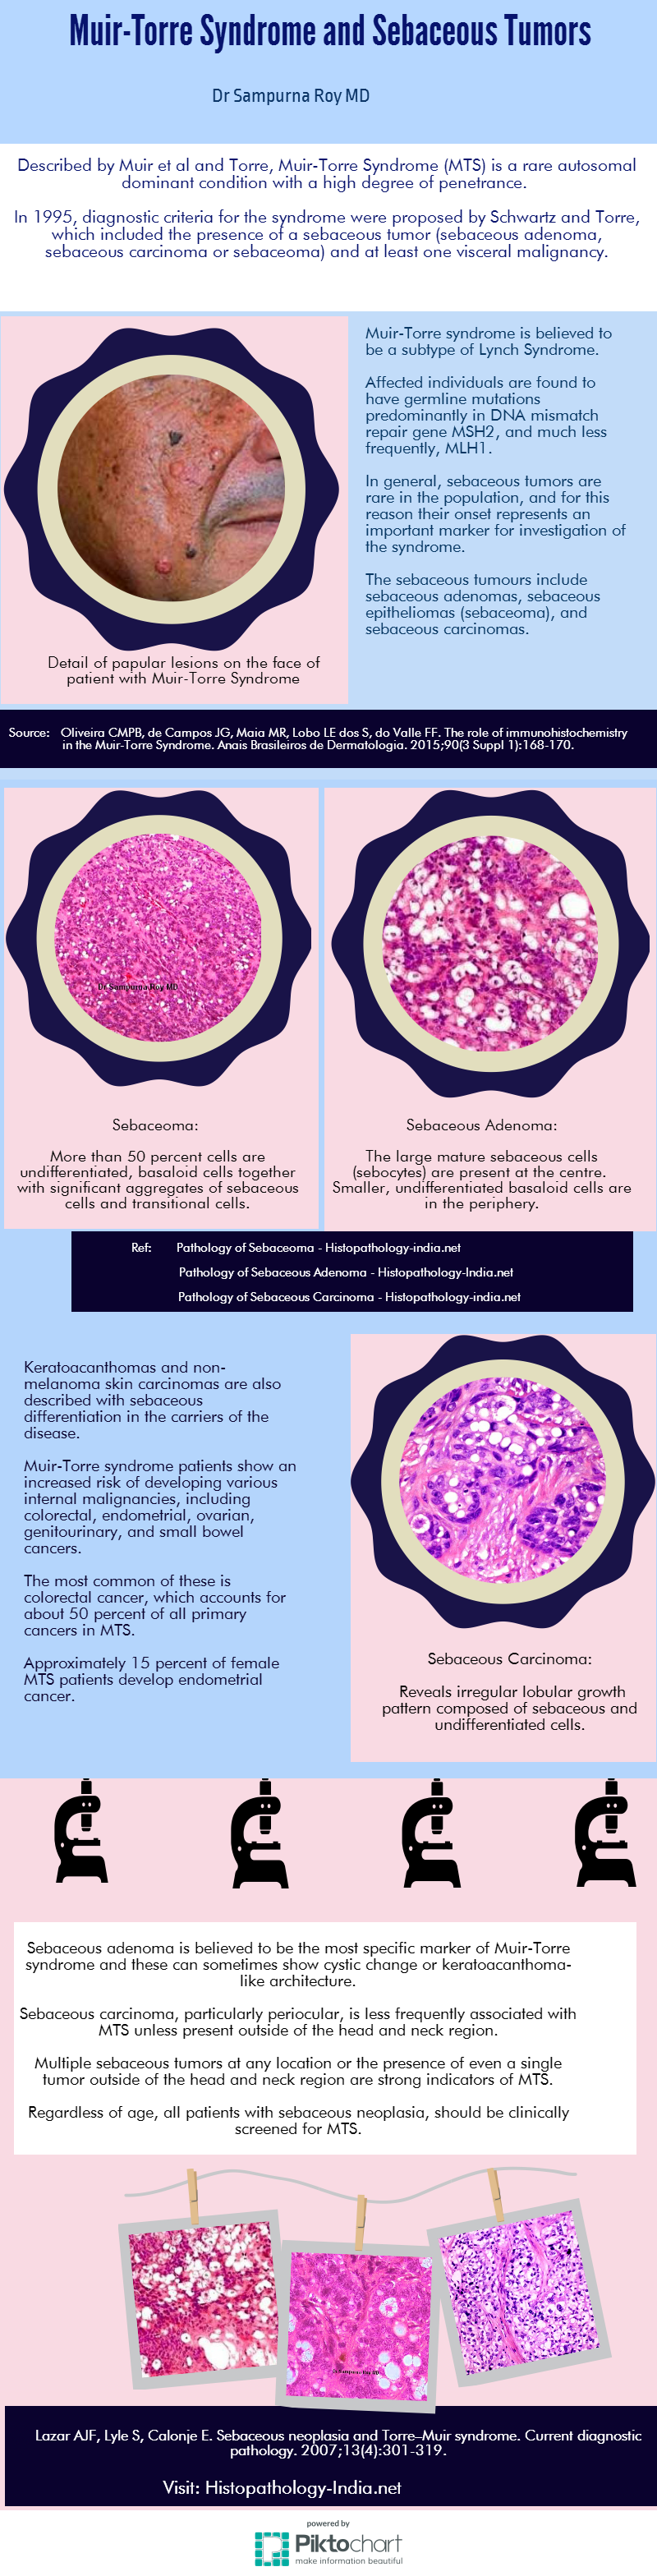 Muir-Torre Syndrome and Sebaceous Tumors [Pathology Infographic]